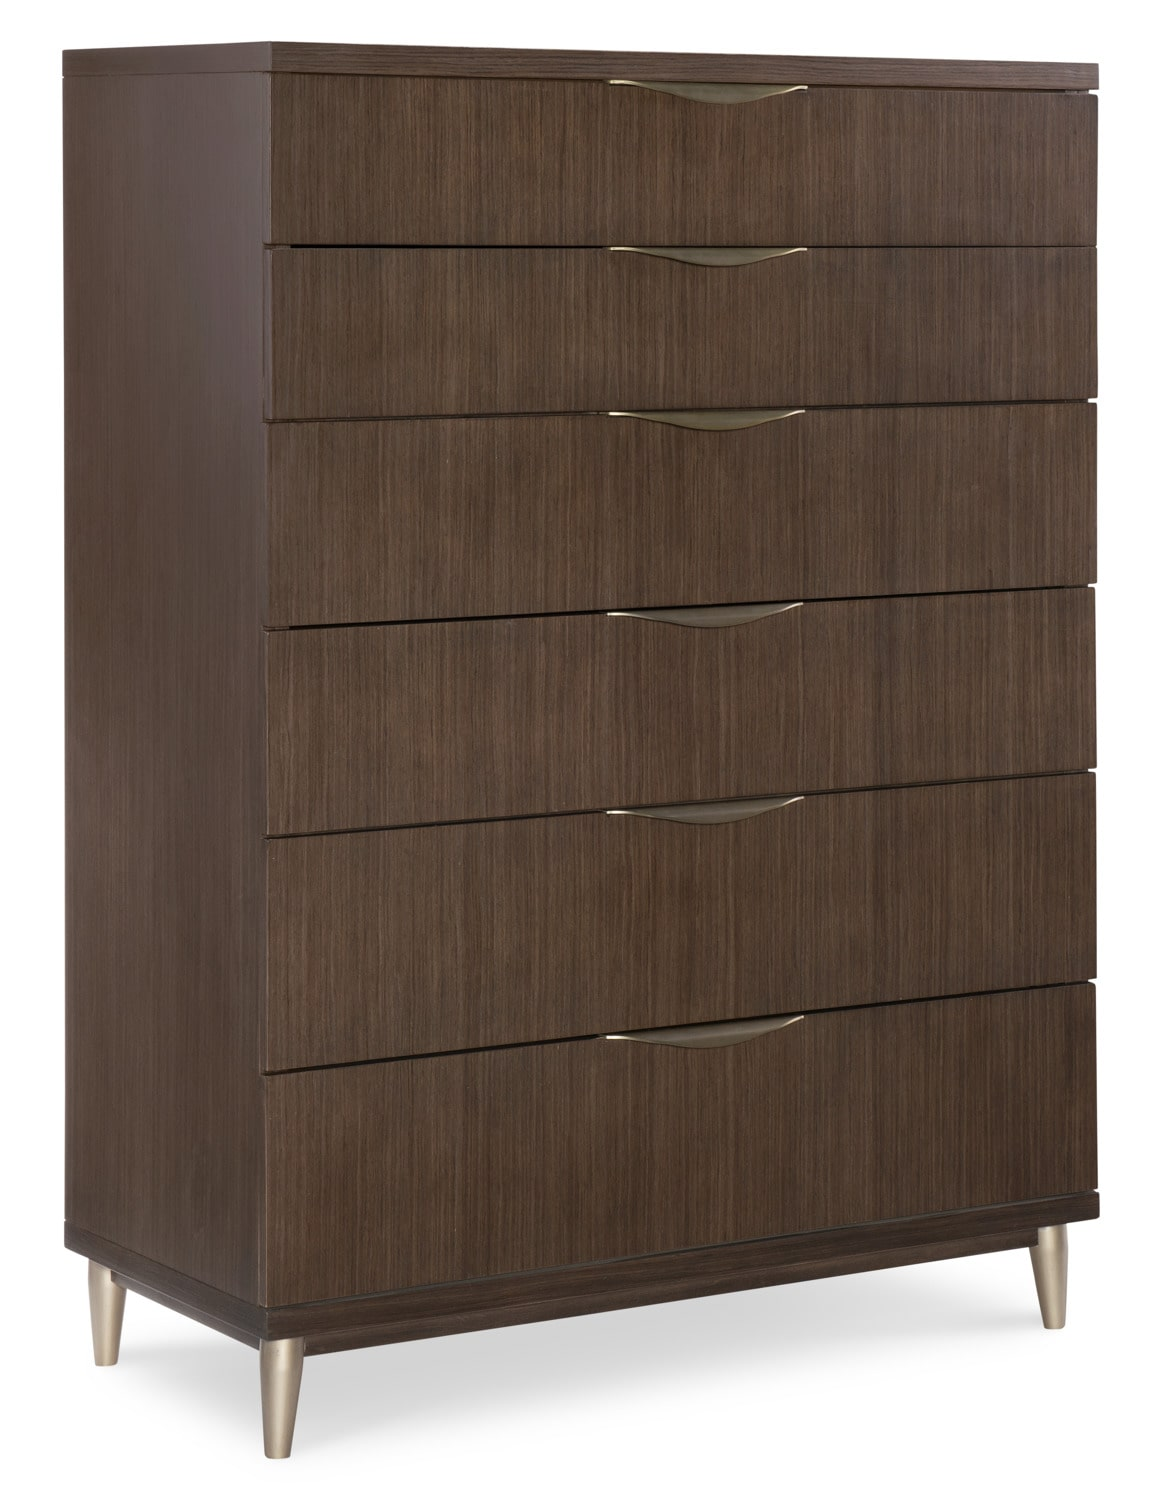 Bedroom Furniture - Rachael Ray Soho 6-Drawer Chest - Ash Brown